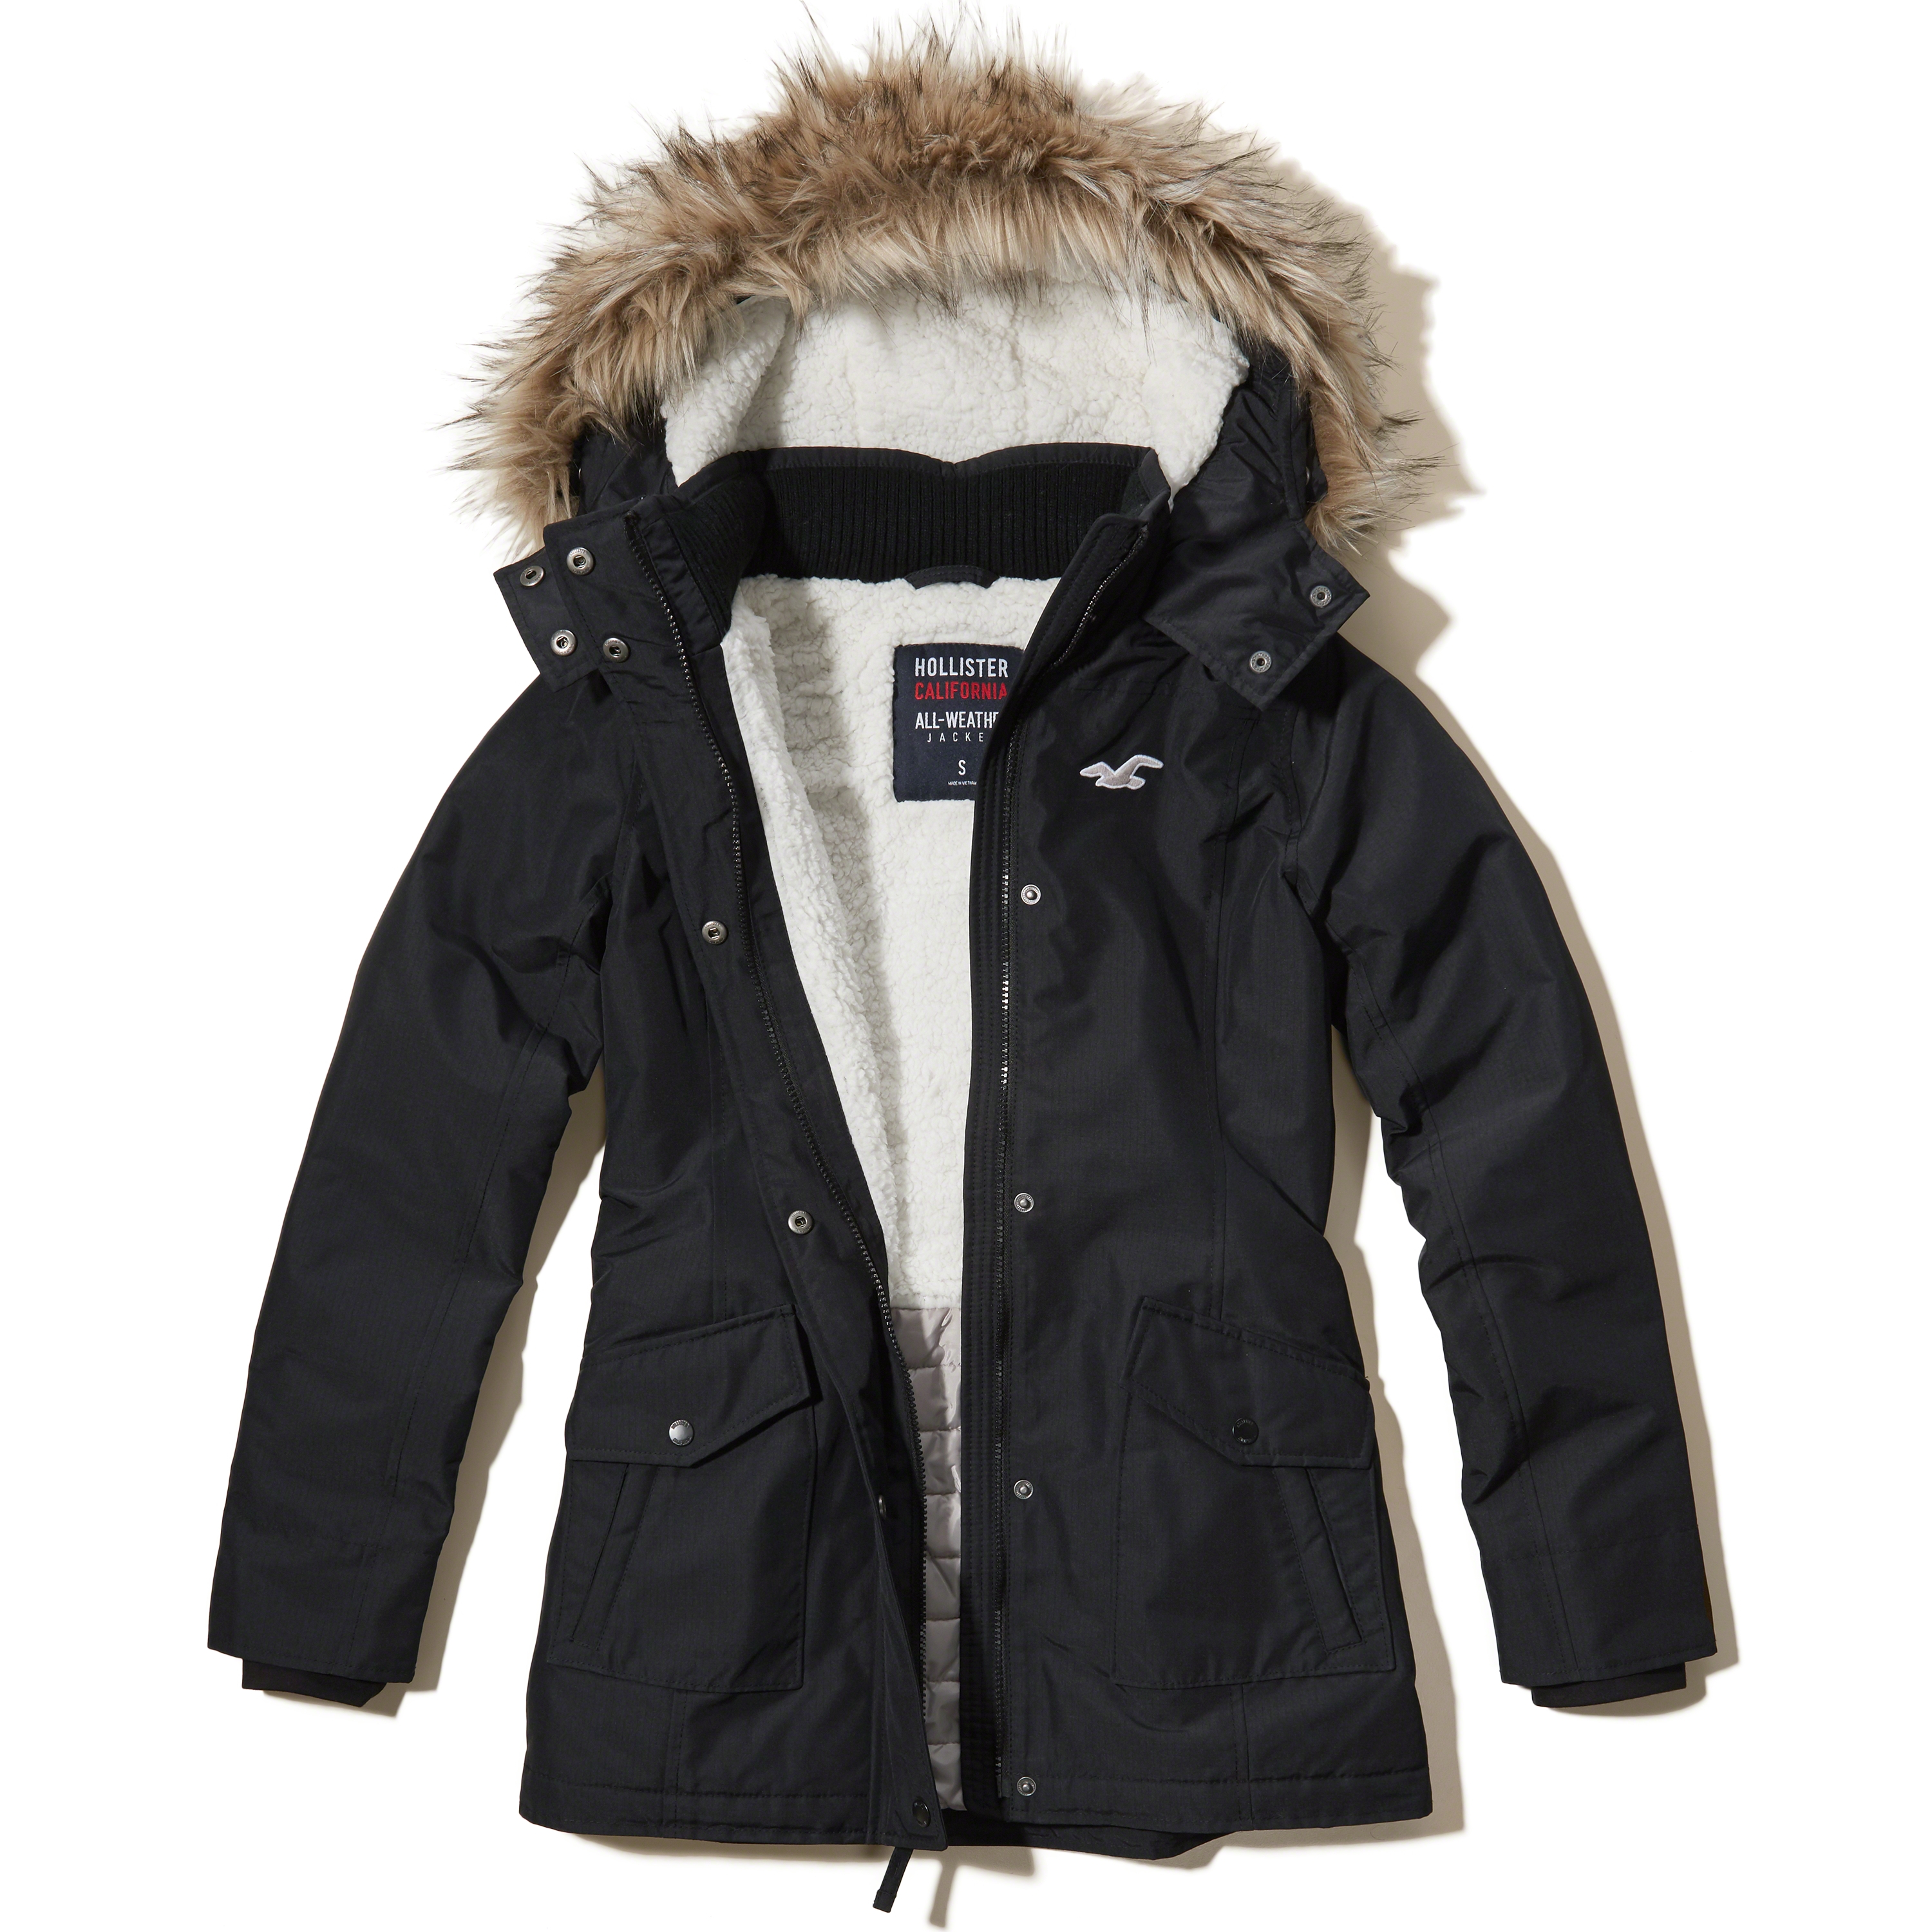 Hollister All Weather Bomber Jacket In Black Lyst